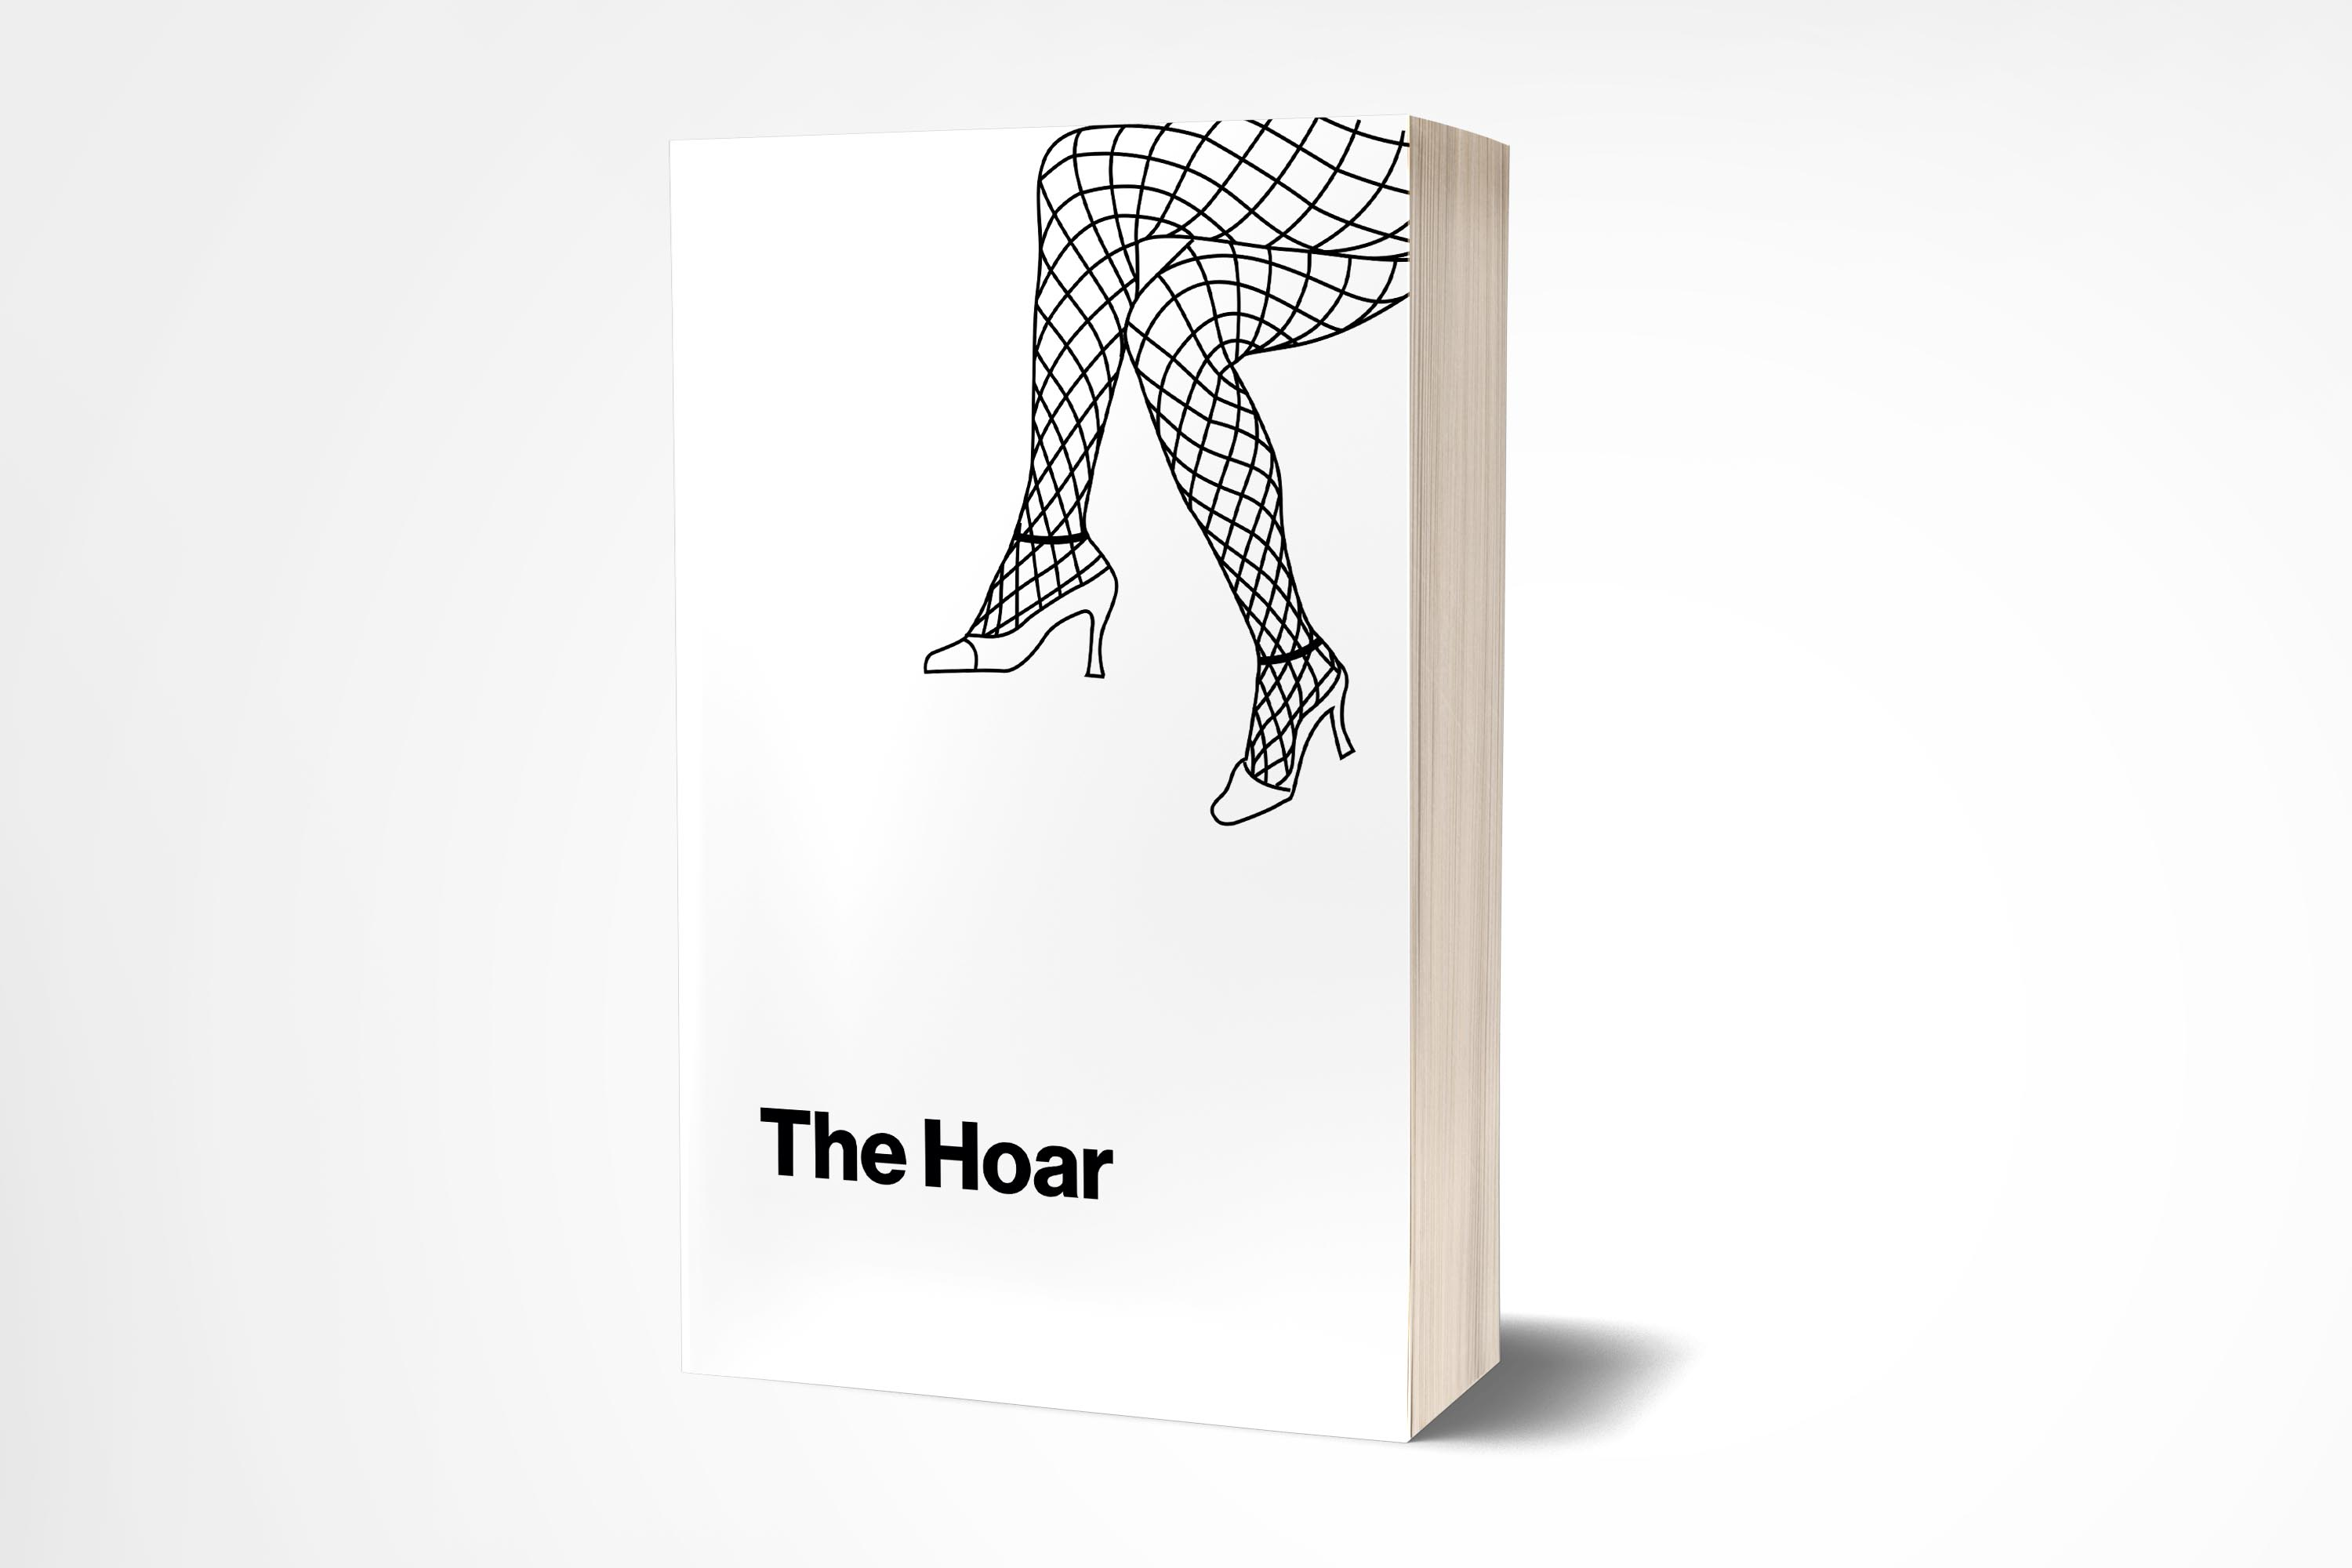 Image of the mainly-white Hoar book on a white backdrop